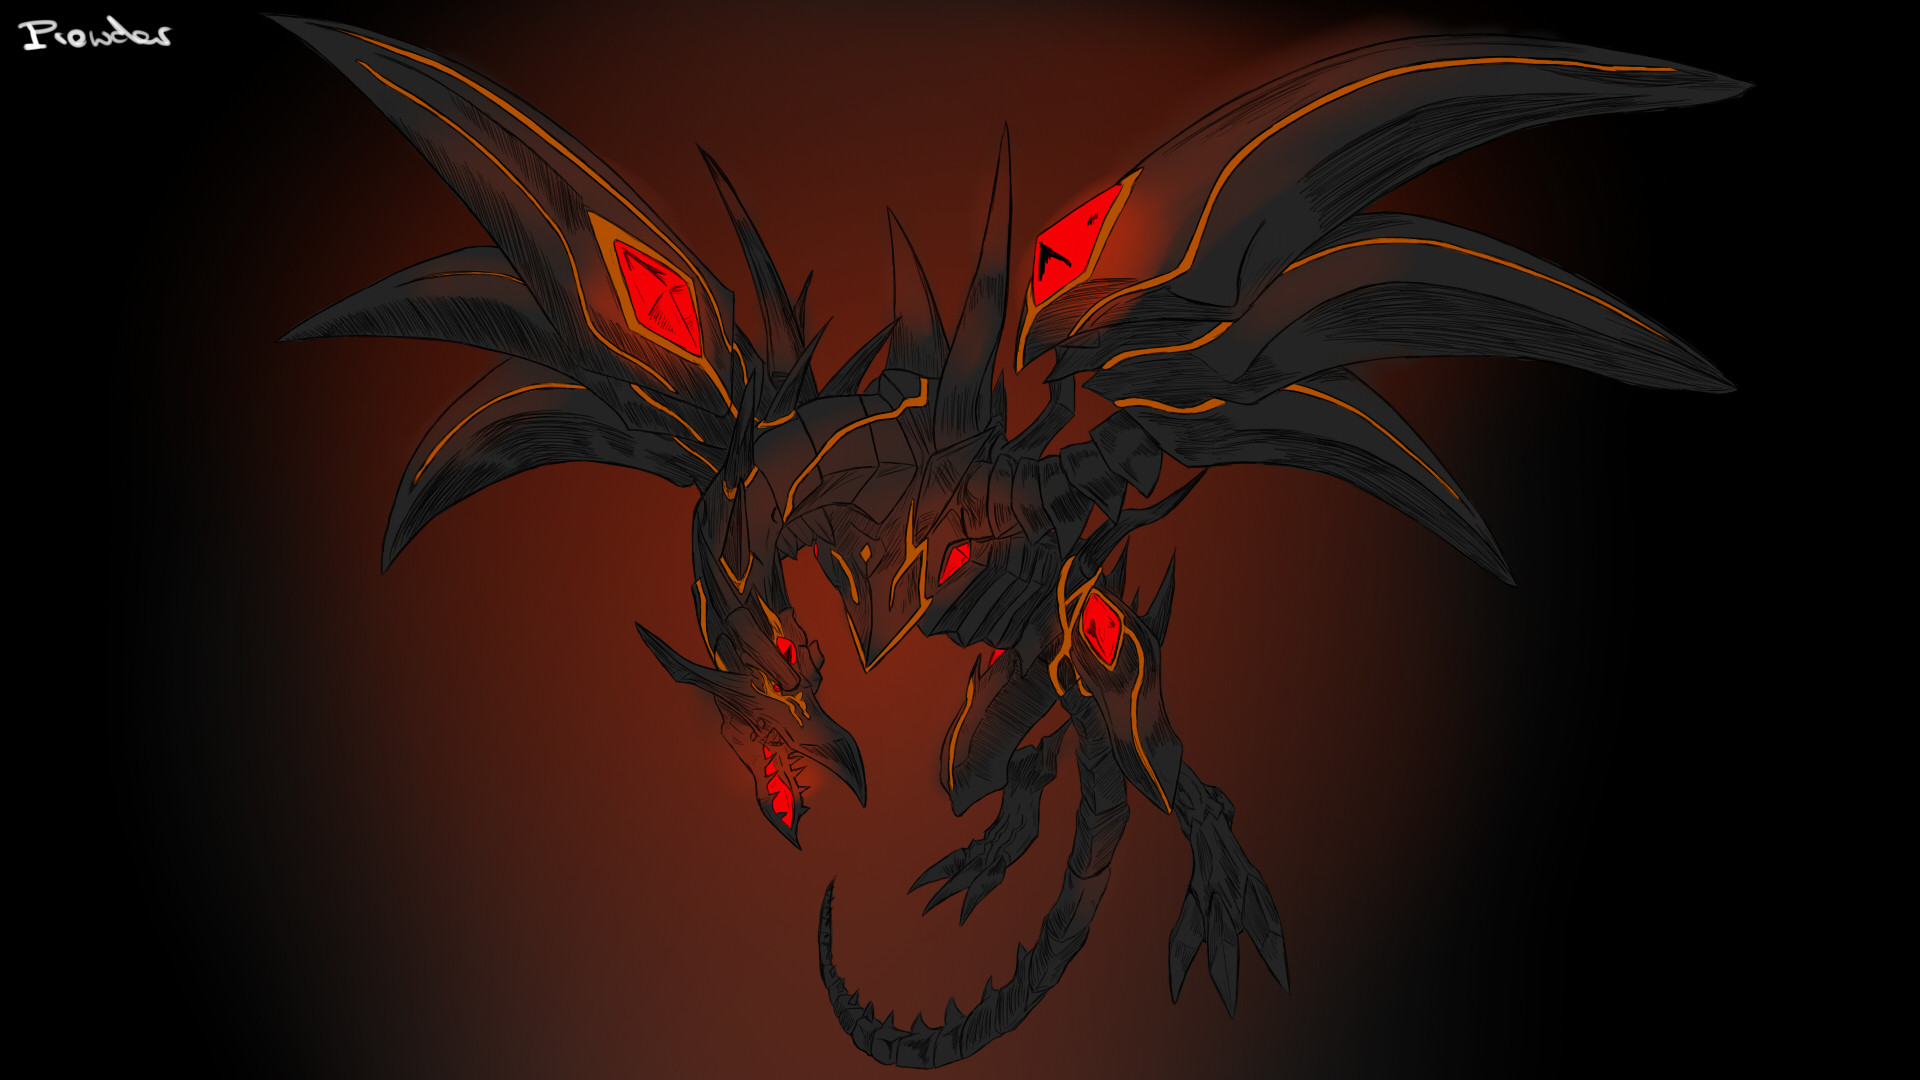 1920x1200 Images For Black Chinese Dragon Wallpaper